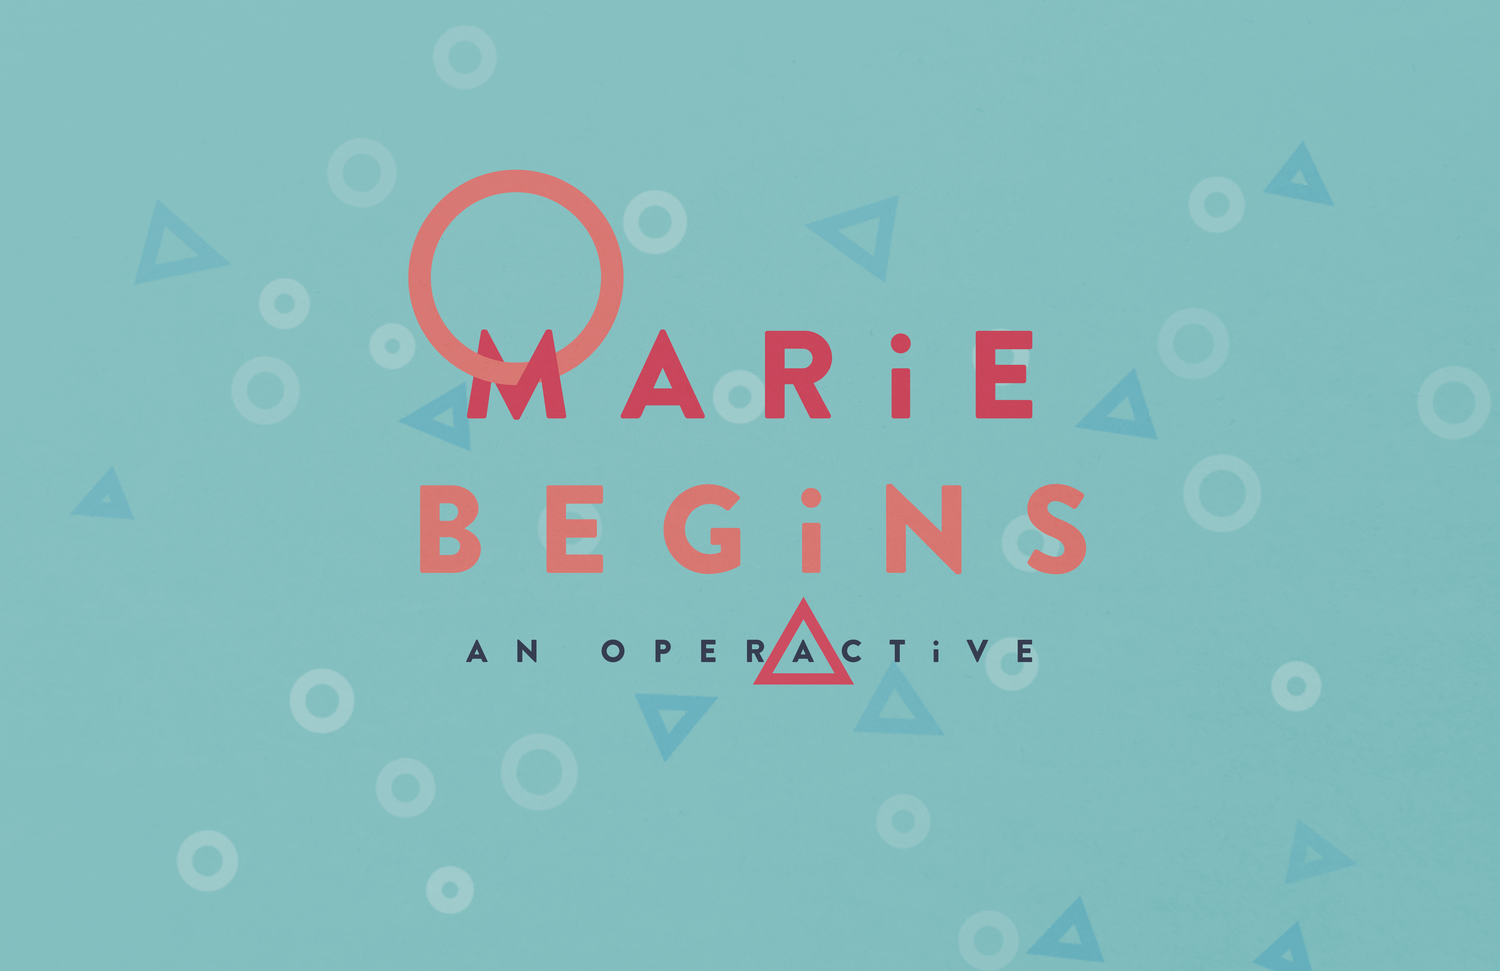 mariebegins_logoconcepts_v2b_color1.png